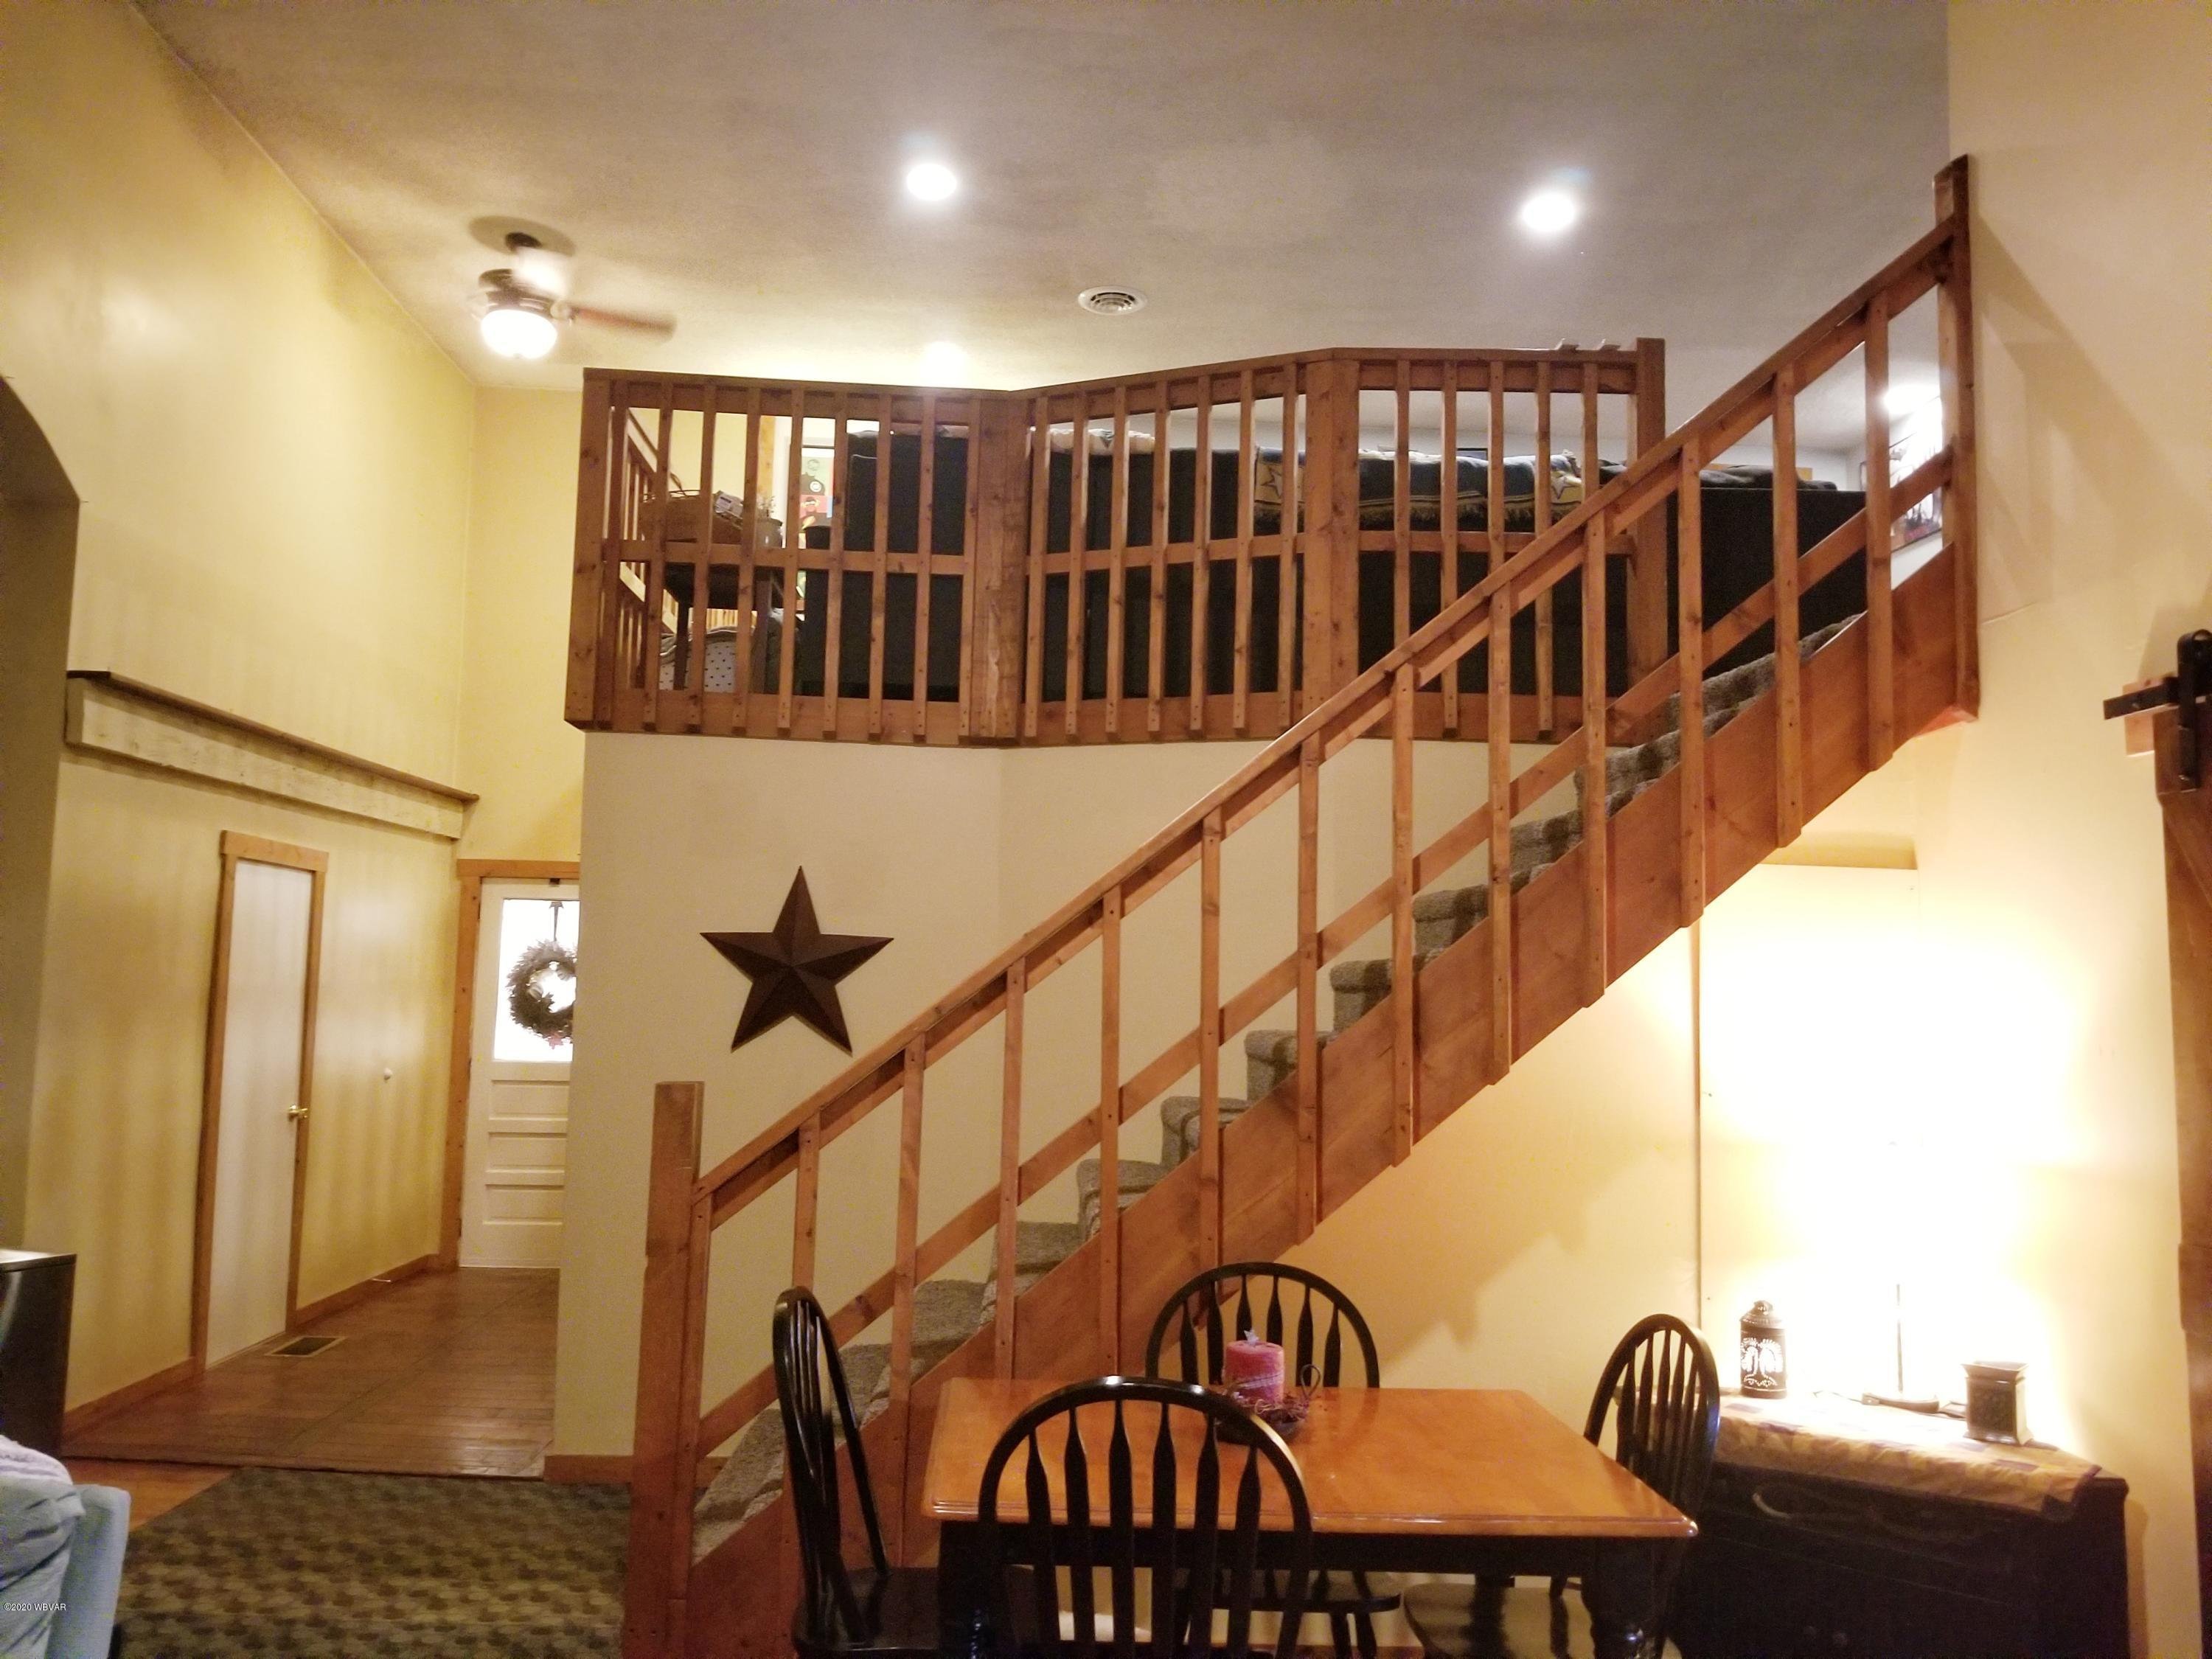 1500 ORCHARD ROAD, Mifflinburg, PA 17844, 5 Bedrooms Bedrooms, ,3 BathroomsBathrooms,Residential,For sale,ORCHARD,WB-91567